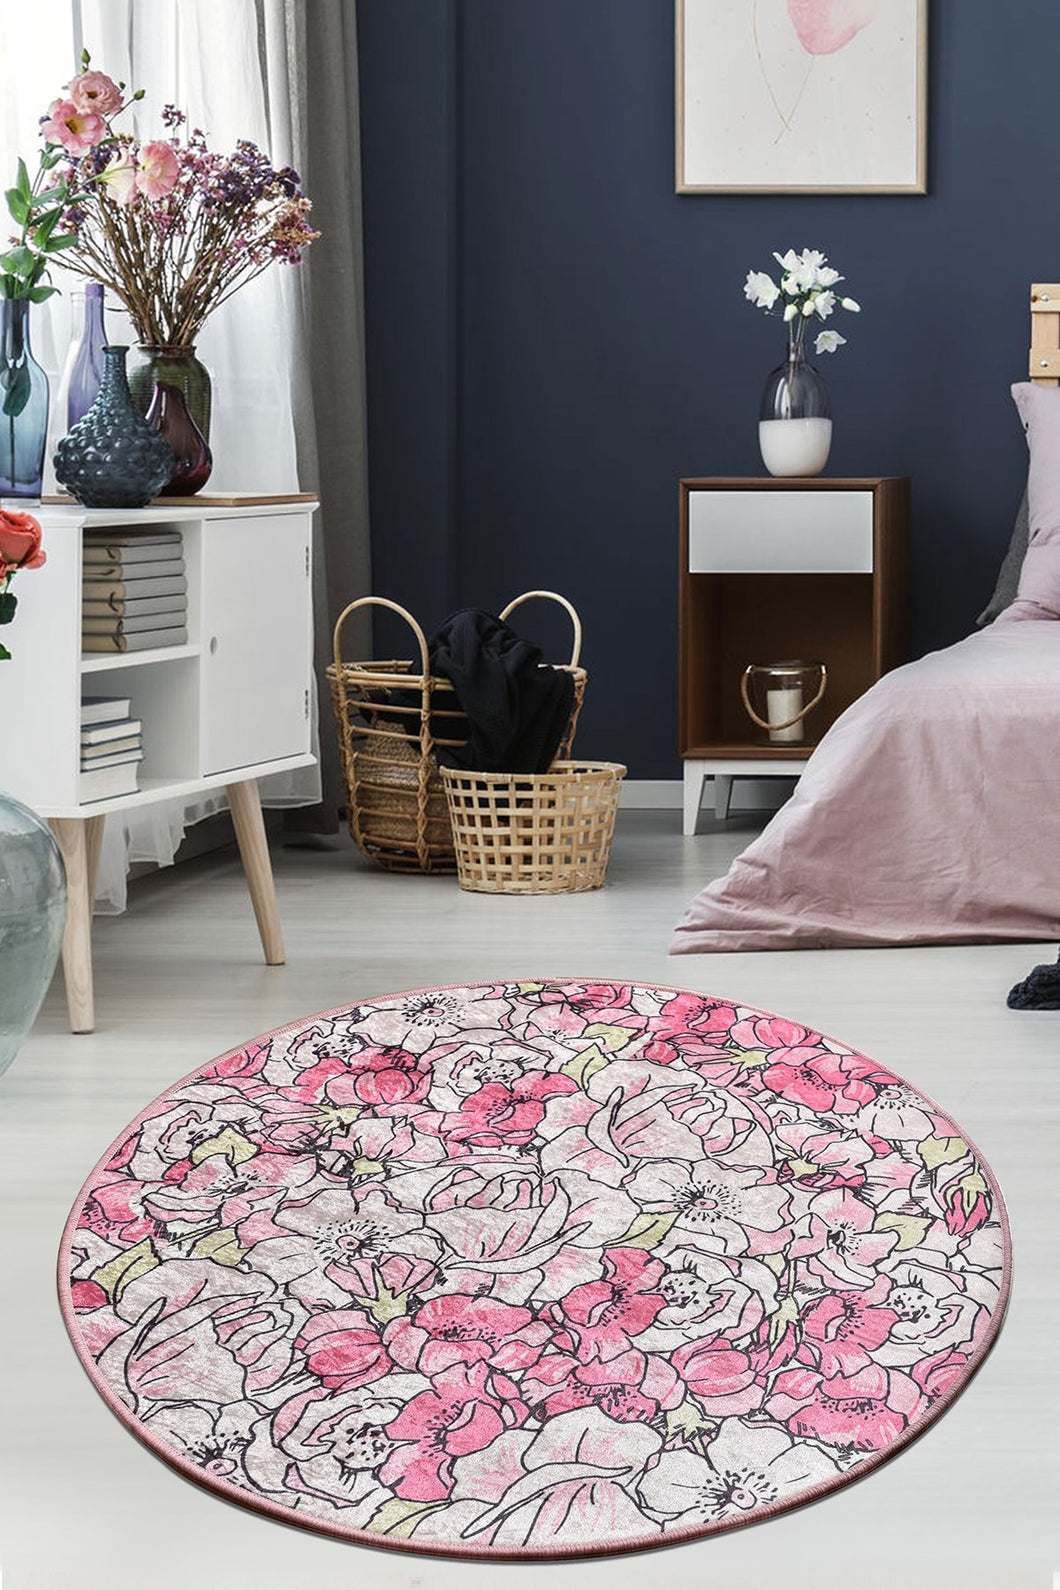 Antdecor Rosa Pink Decorative Carpet 140X140 Cm